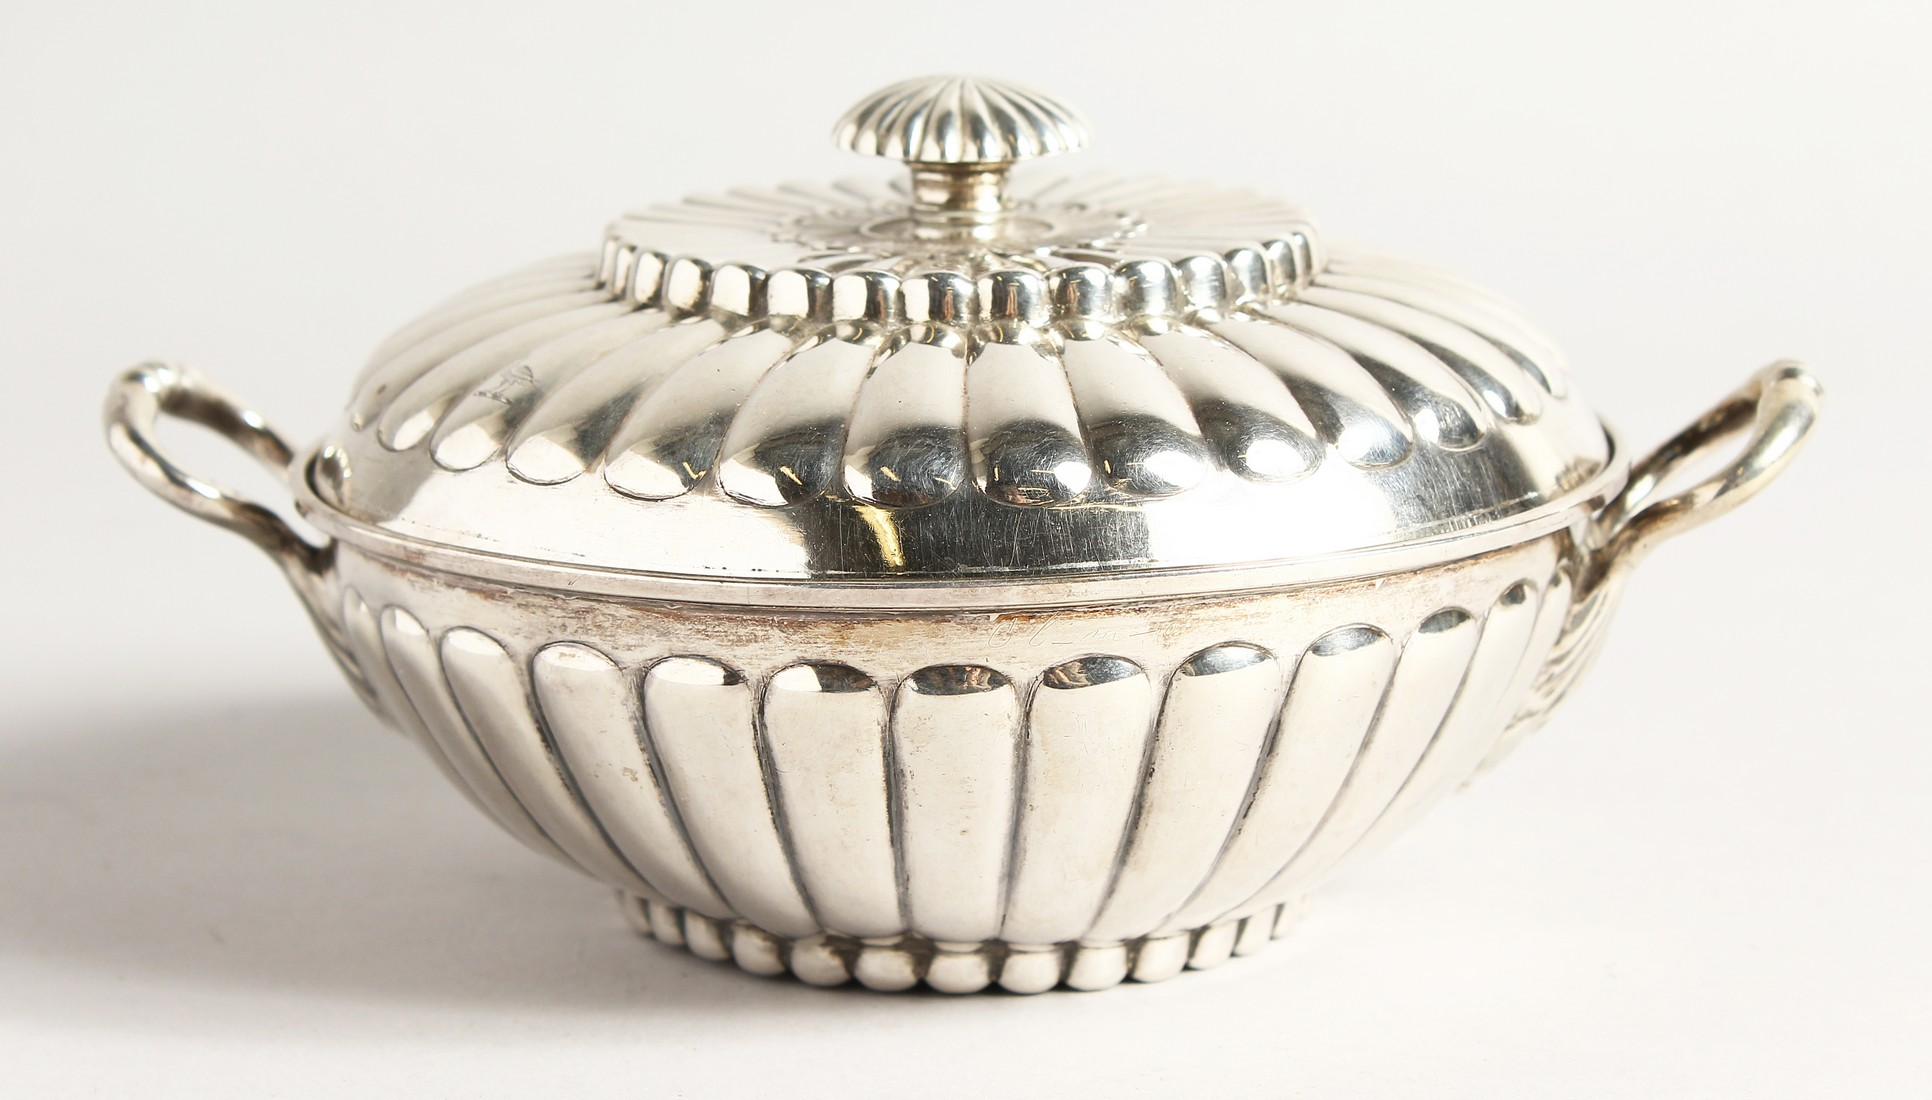 A GEORGE II SILVER CIRCULAR TWO HANDLED ECULLE and cover with fluted decorations. 5.5ins diameter